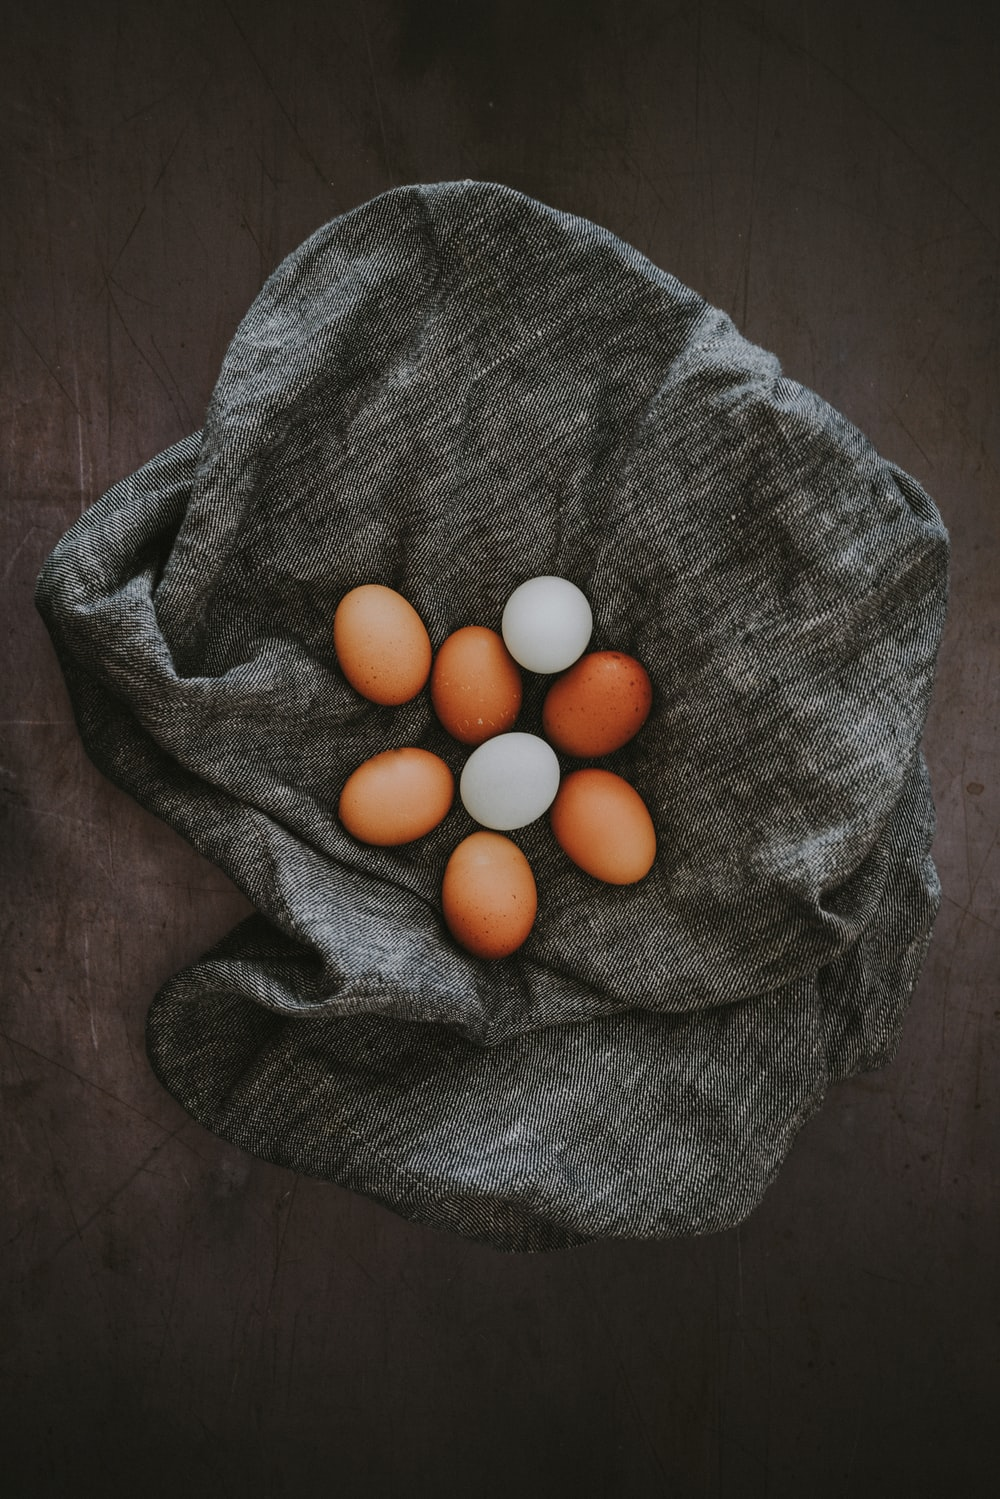 white and brown egg lot on grey textile